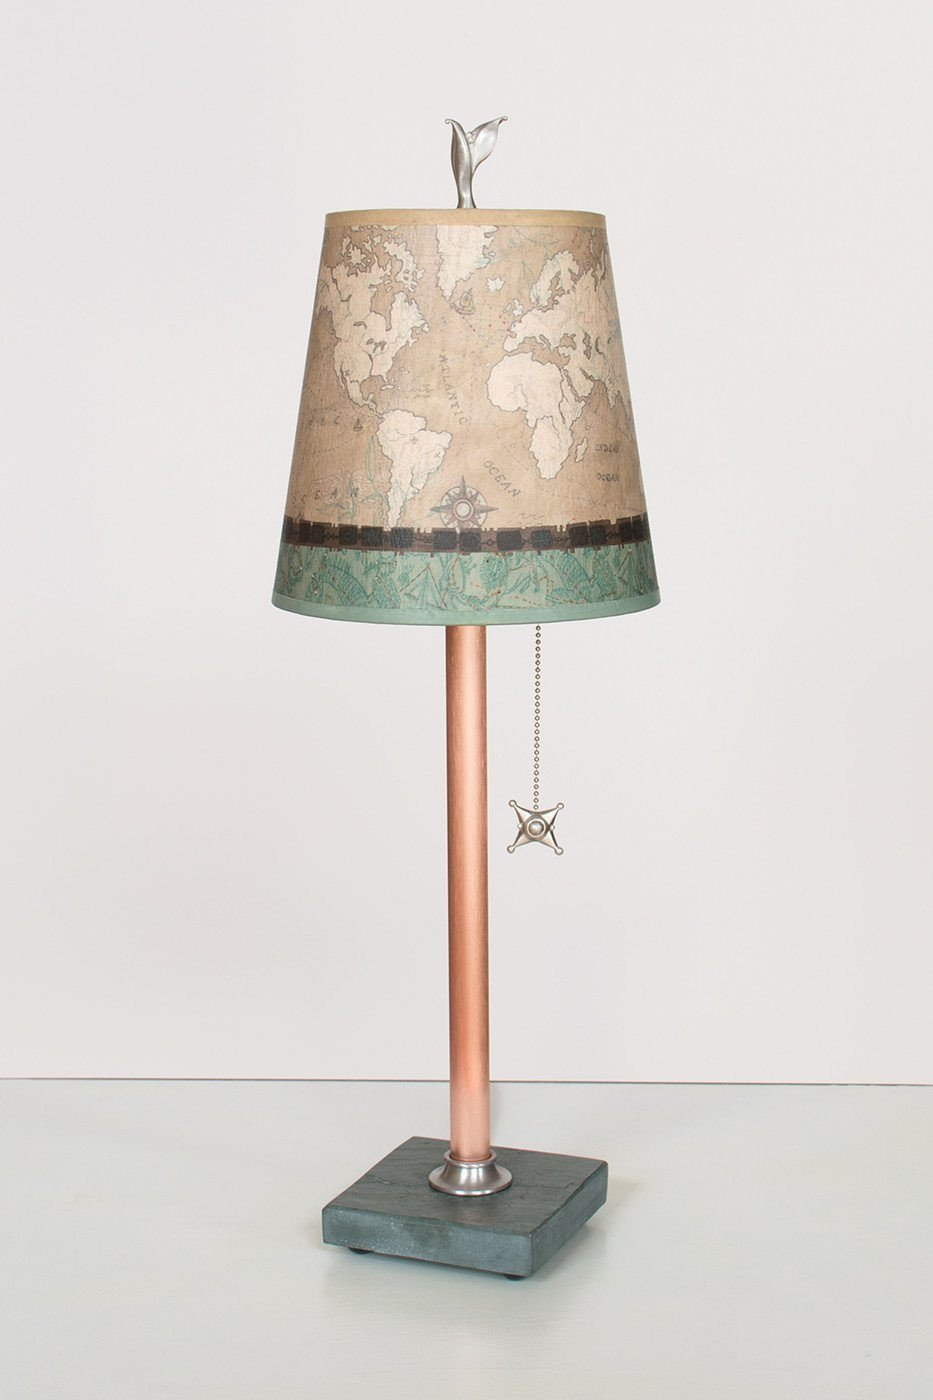 Copper Table Lamp on Vermont Slate Base with Small Drum Shade in Sand Map Lit